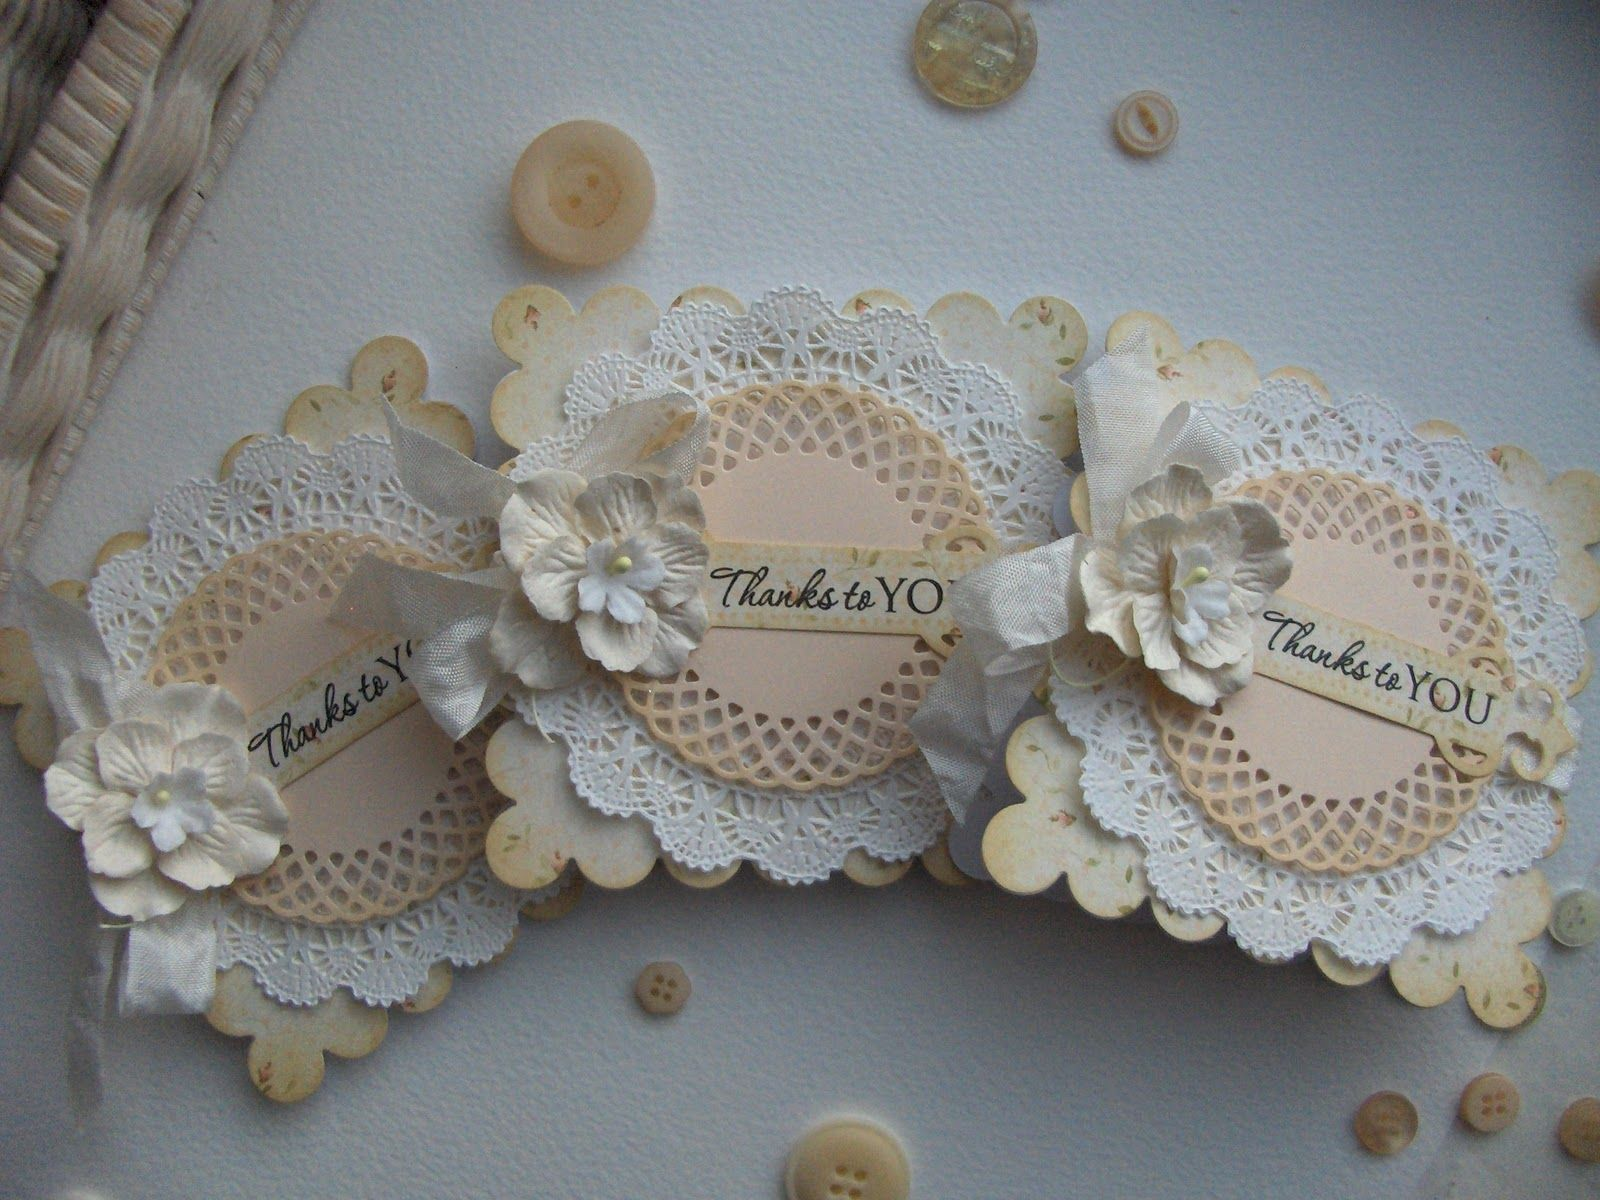 Doily detail cards.